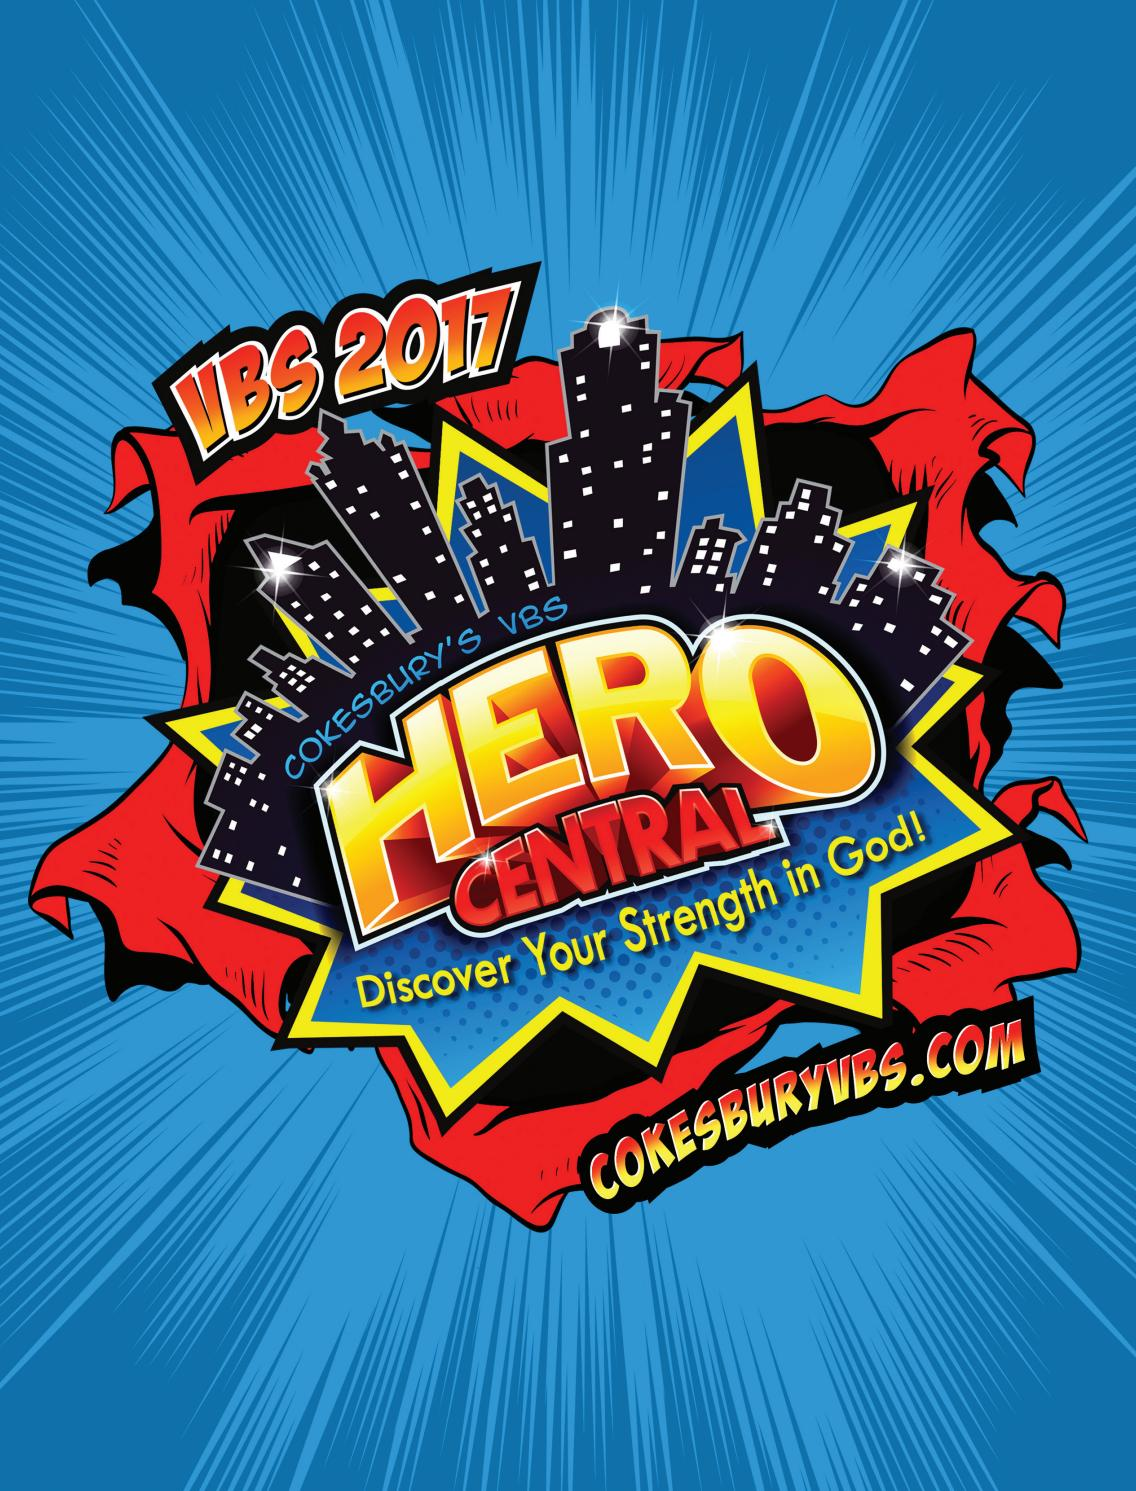 Cokesbury S Vbs Hero Central 2017 Catalog By United